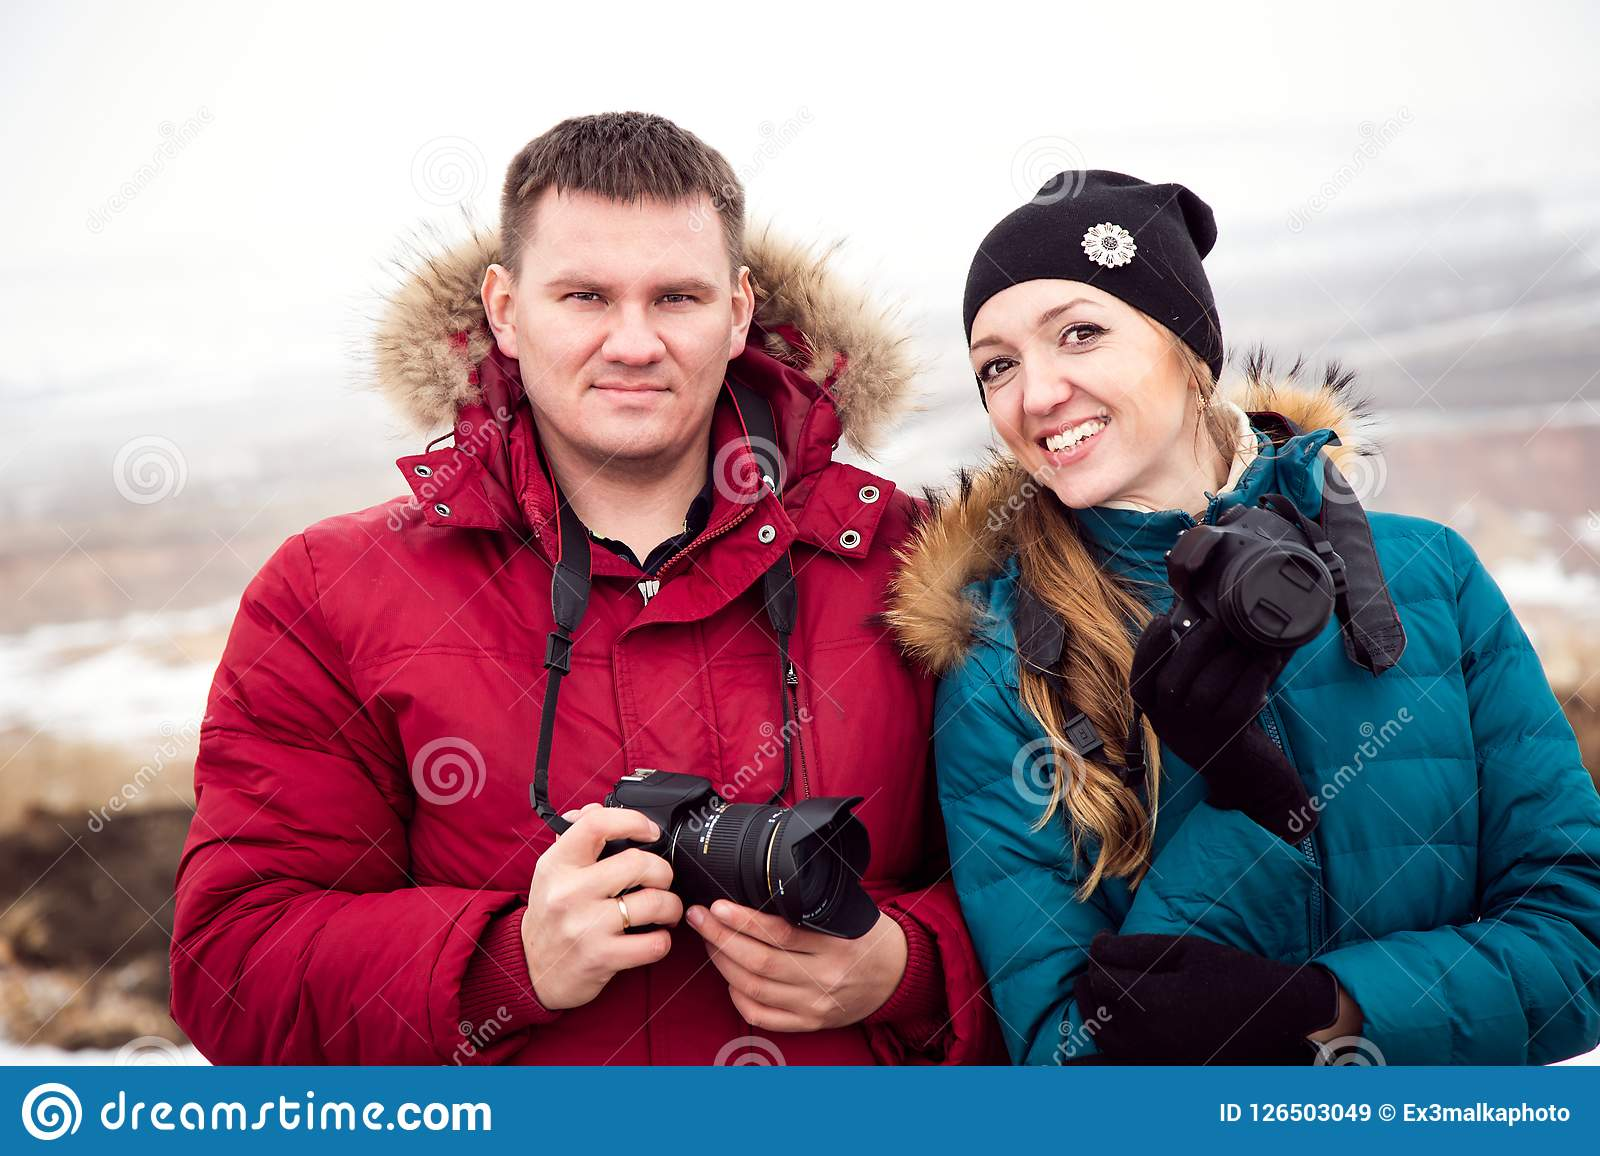 A Man And A Woman With Cameras Travel In Winter Stock Image